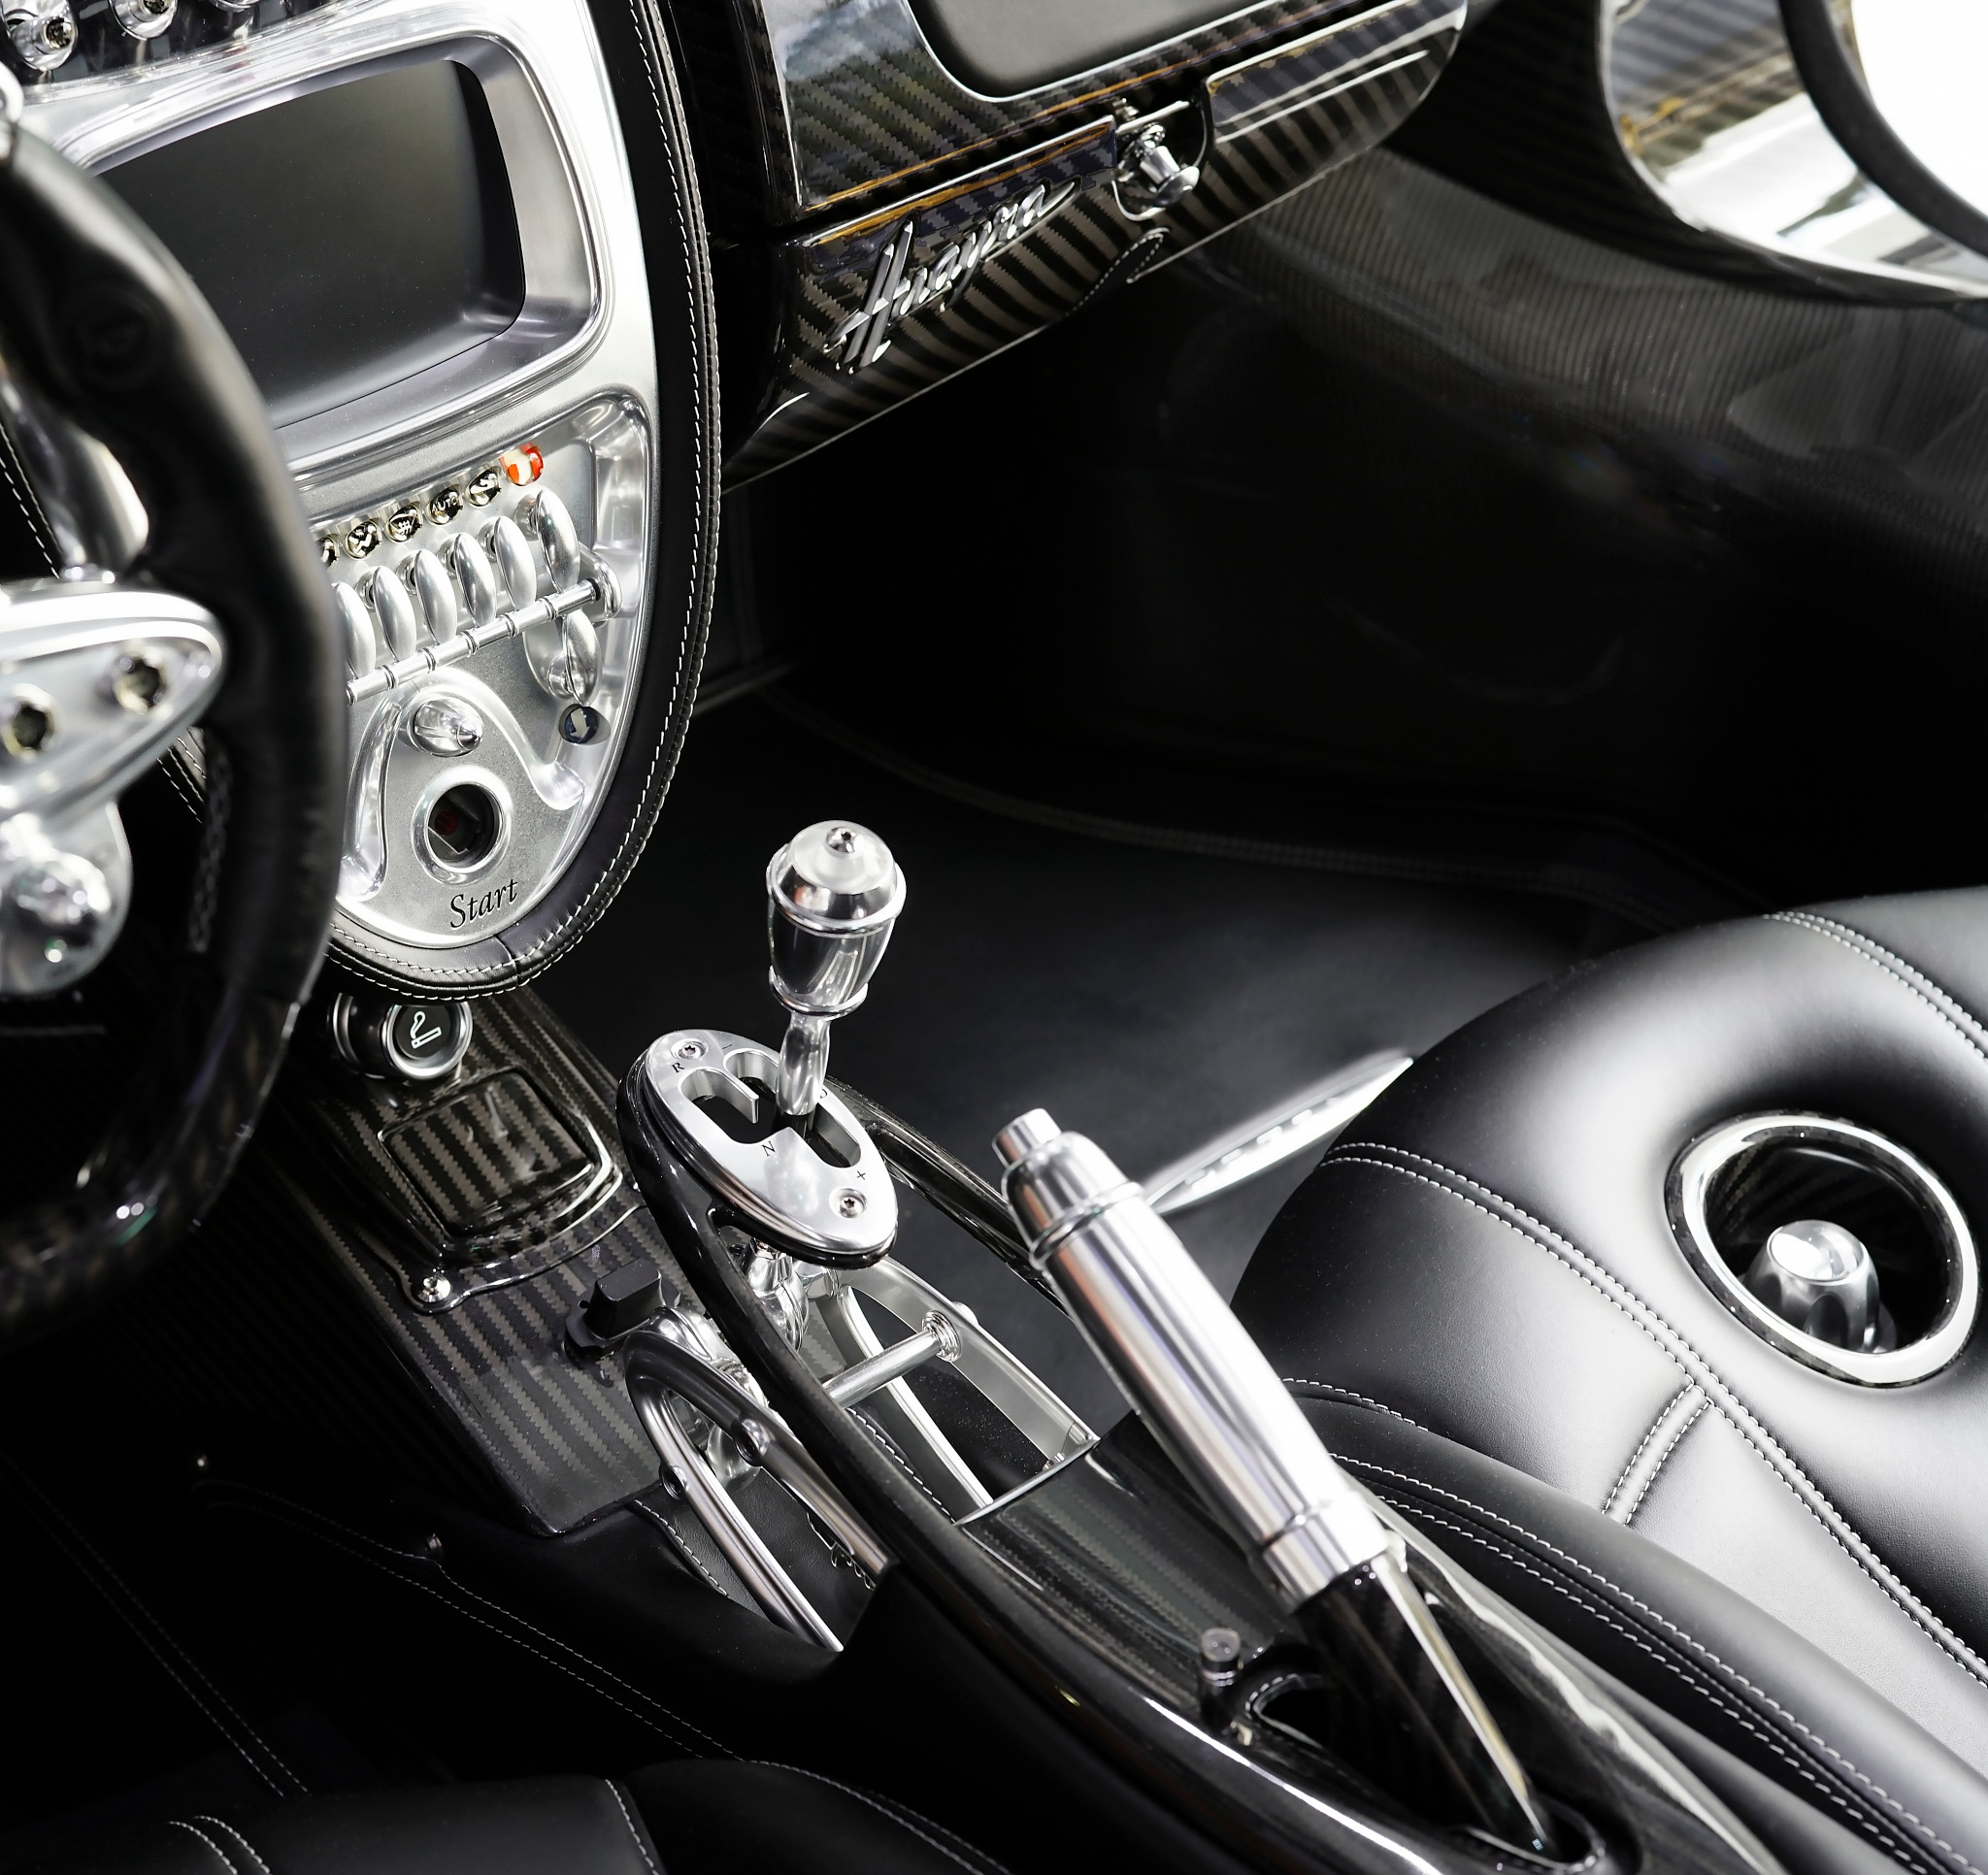 Pagani Huayra Interior by Terry R. Stahly